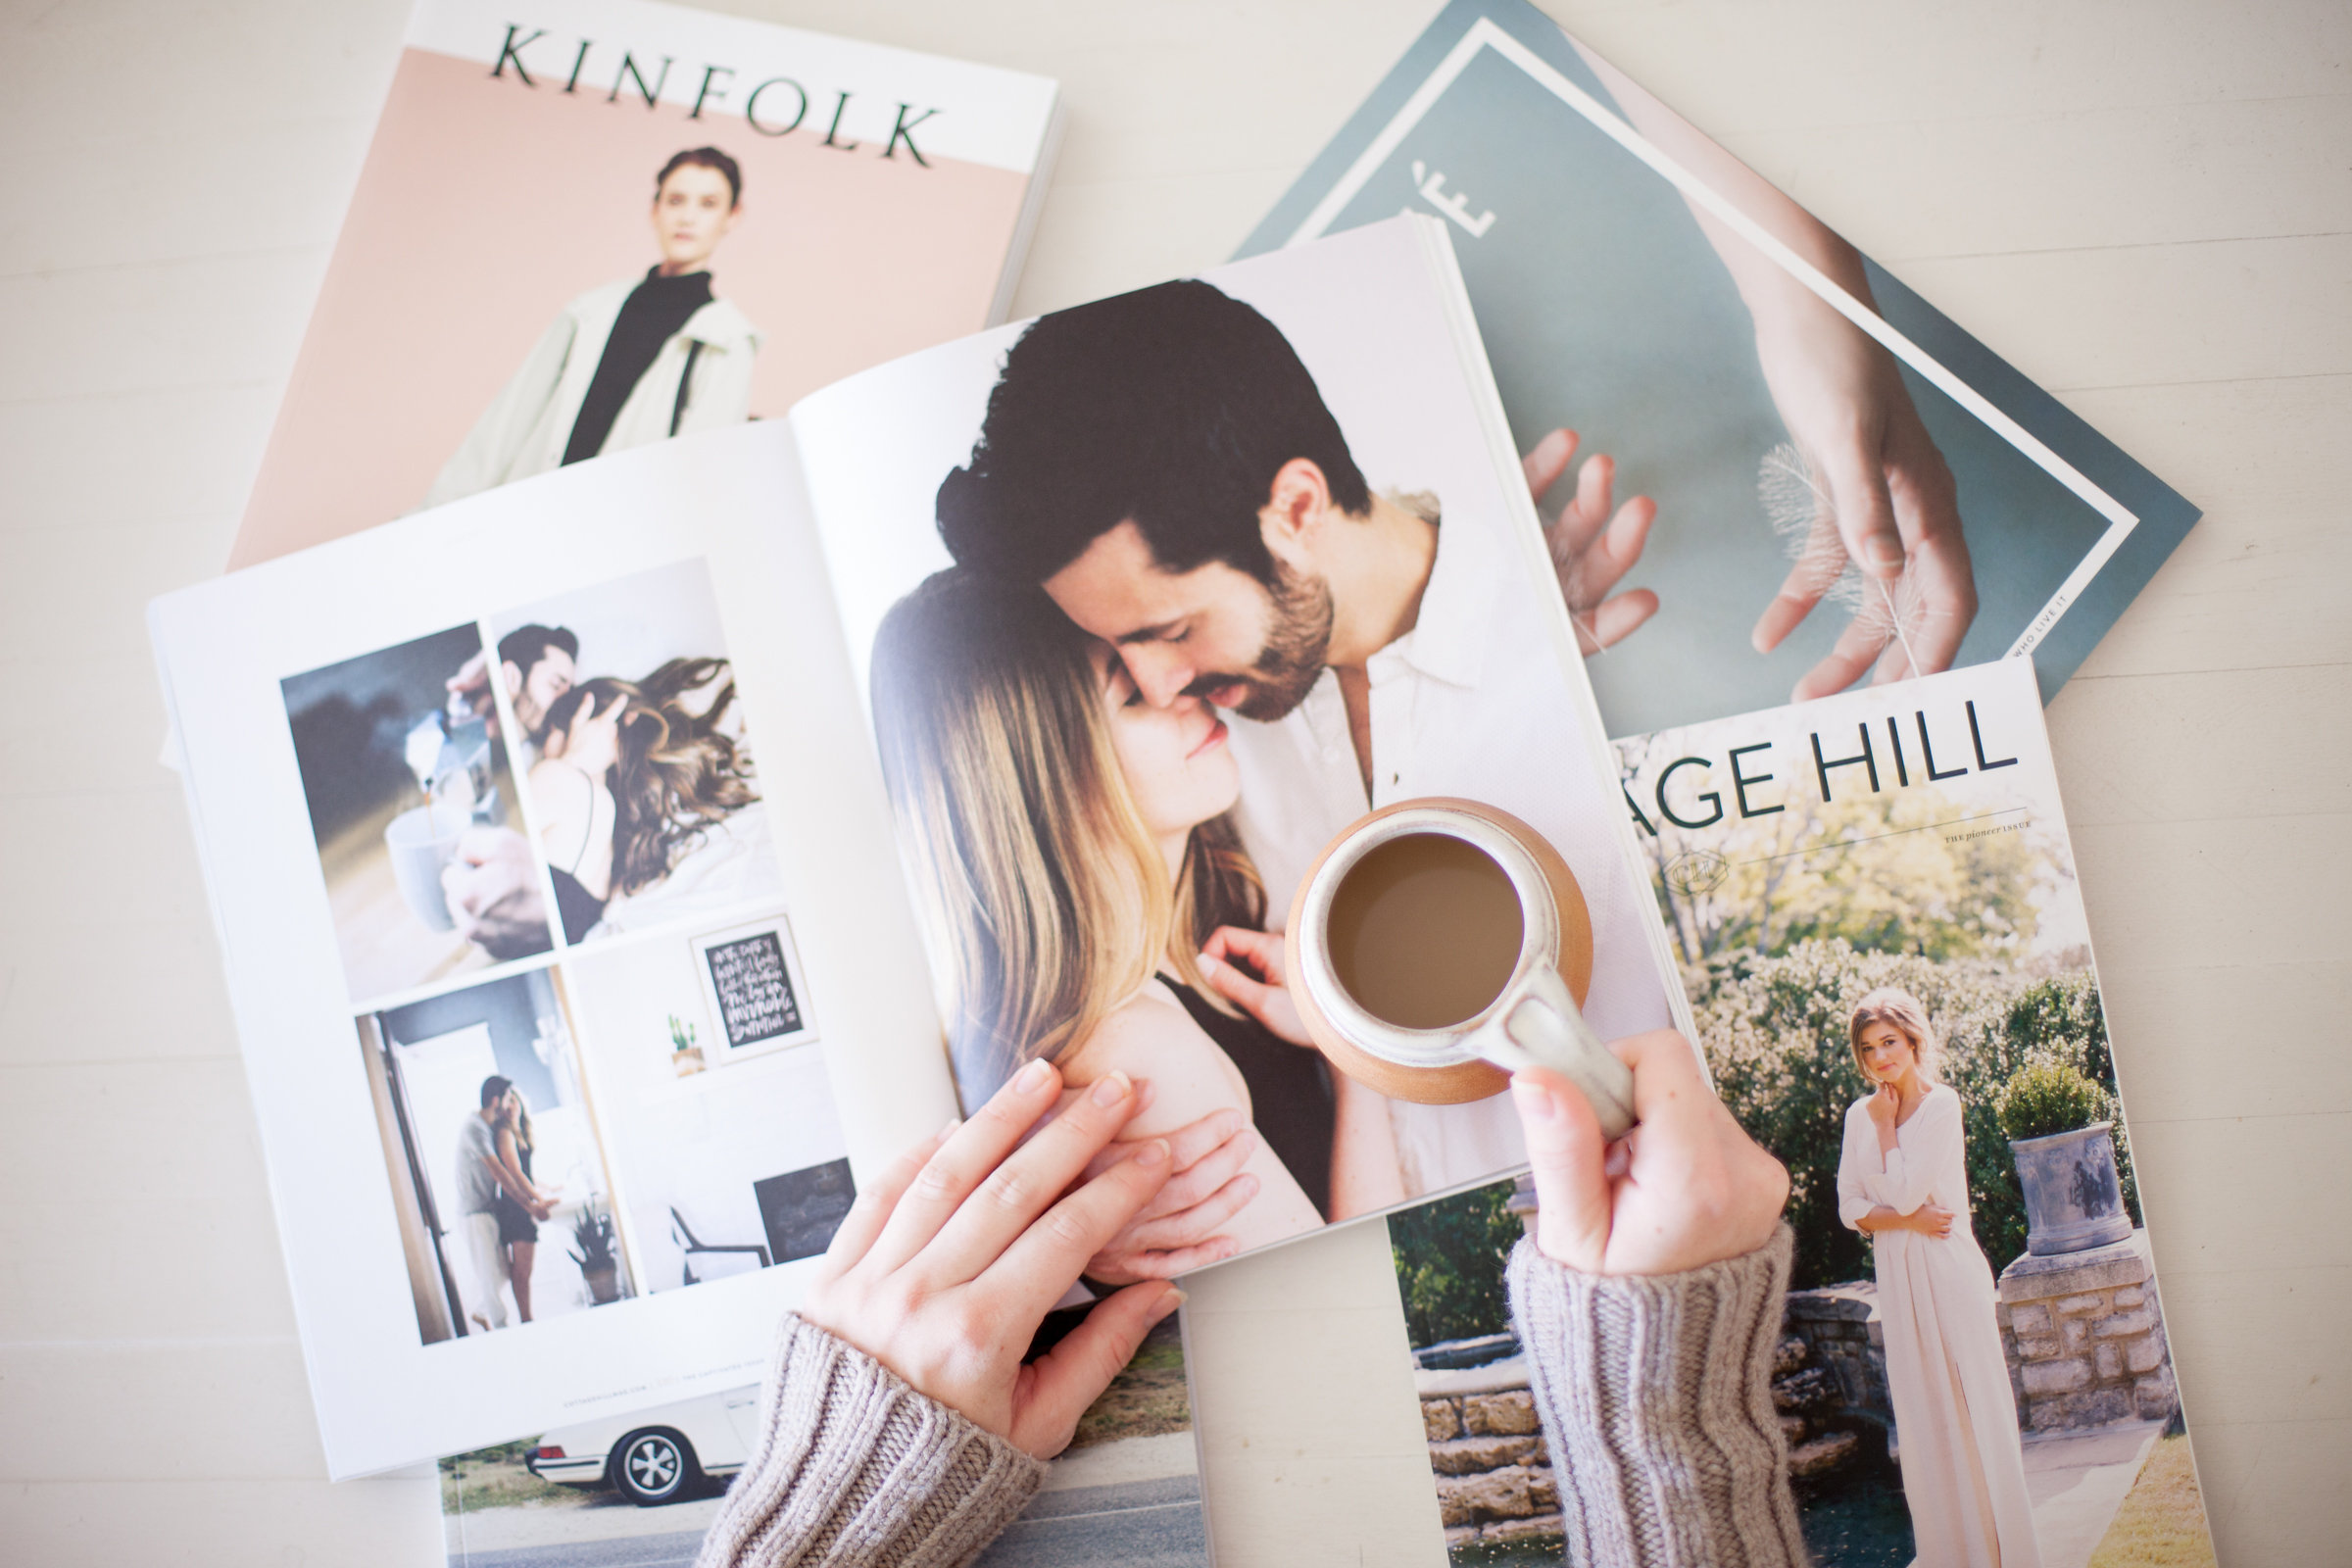 Calling all Writers for Cottage Hill Magazine